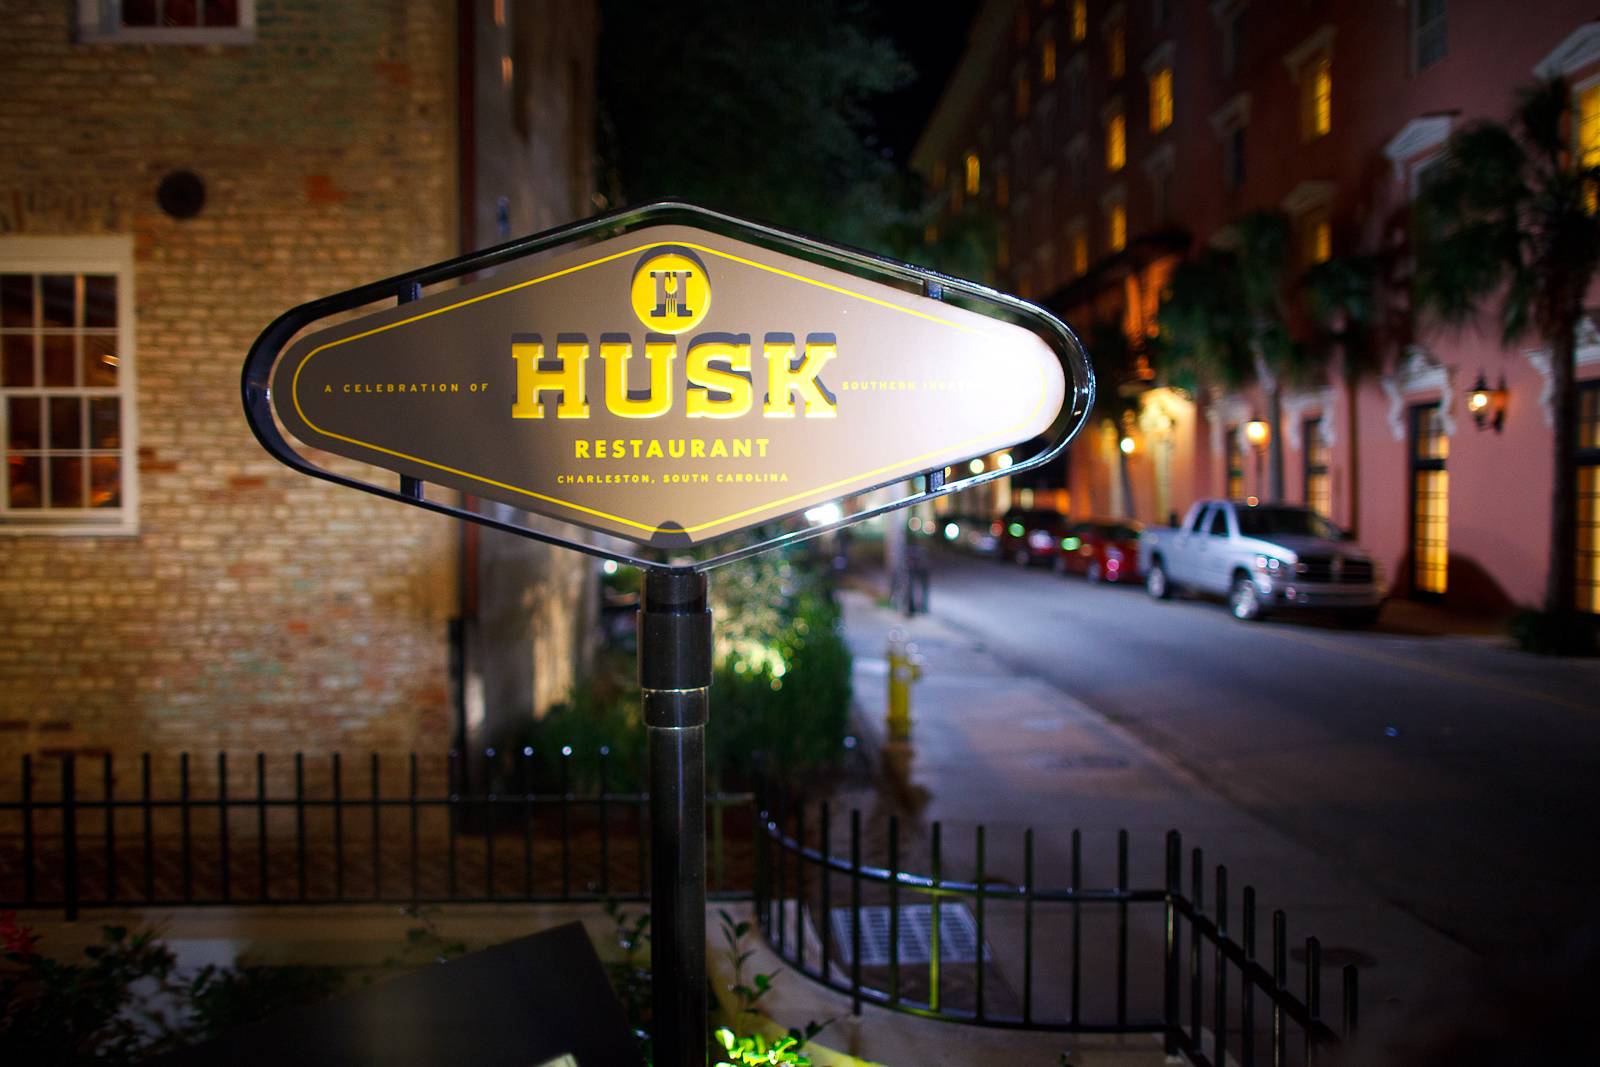 Husk, a celebration of southern cooking